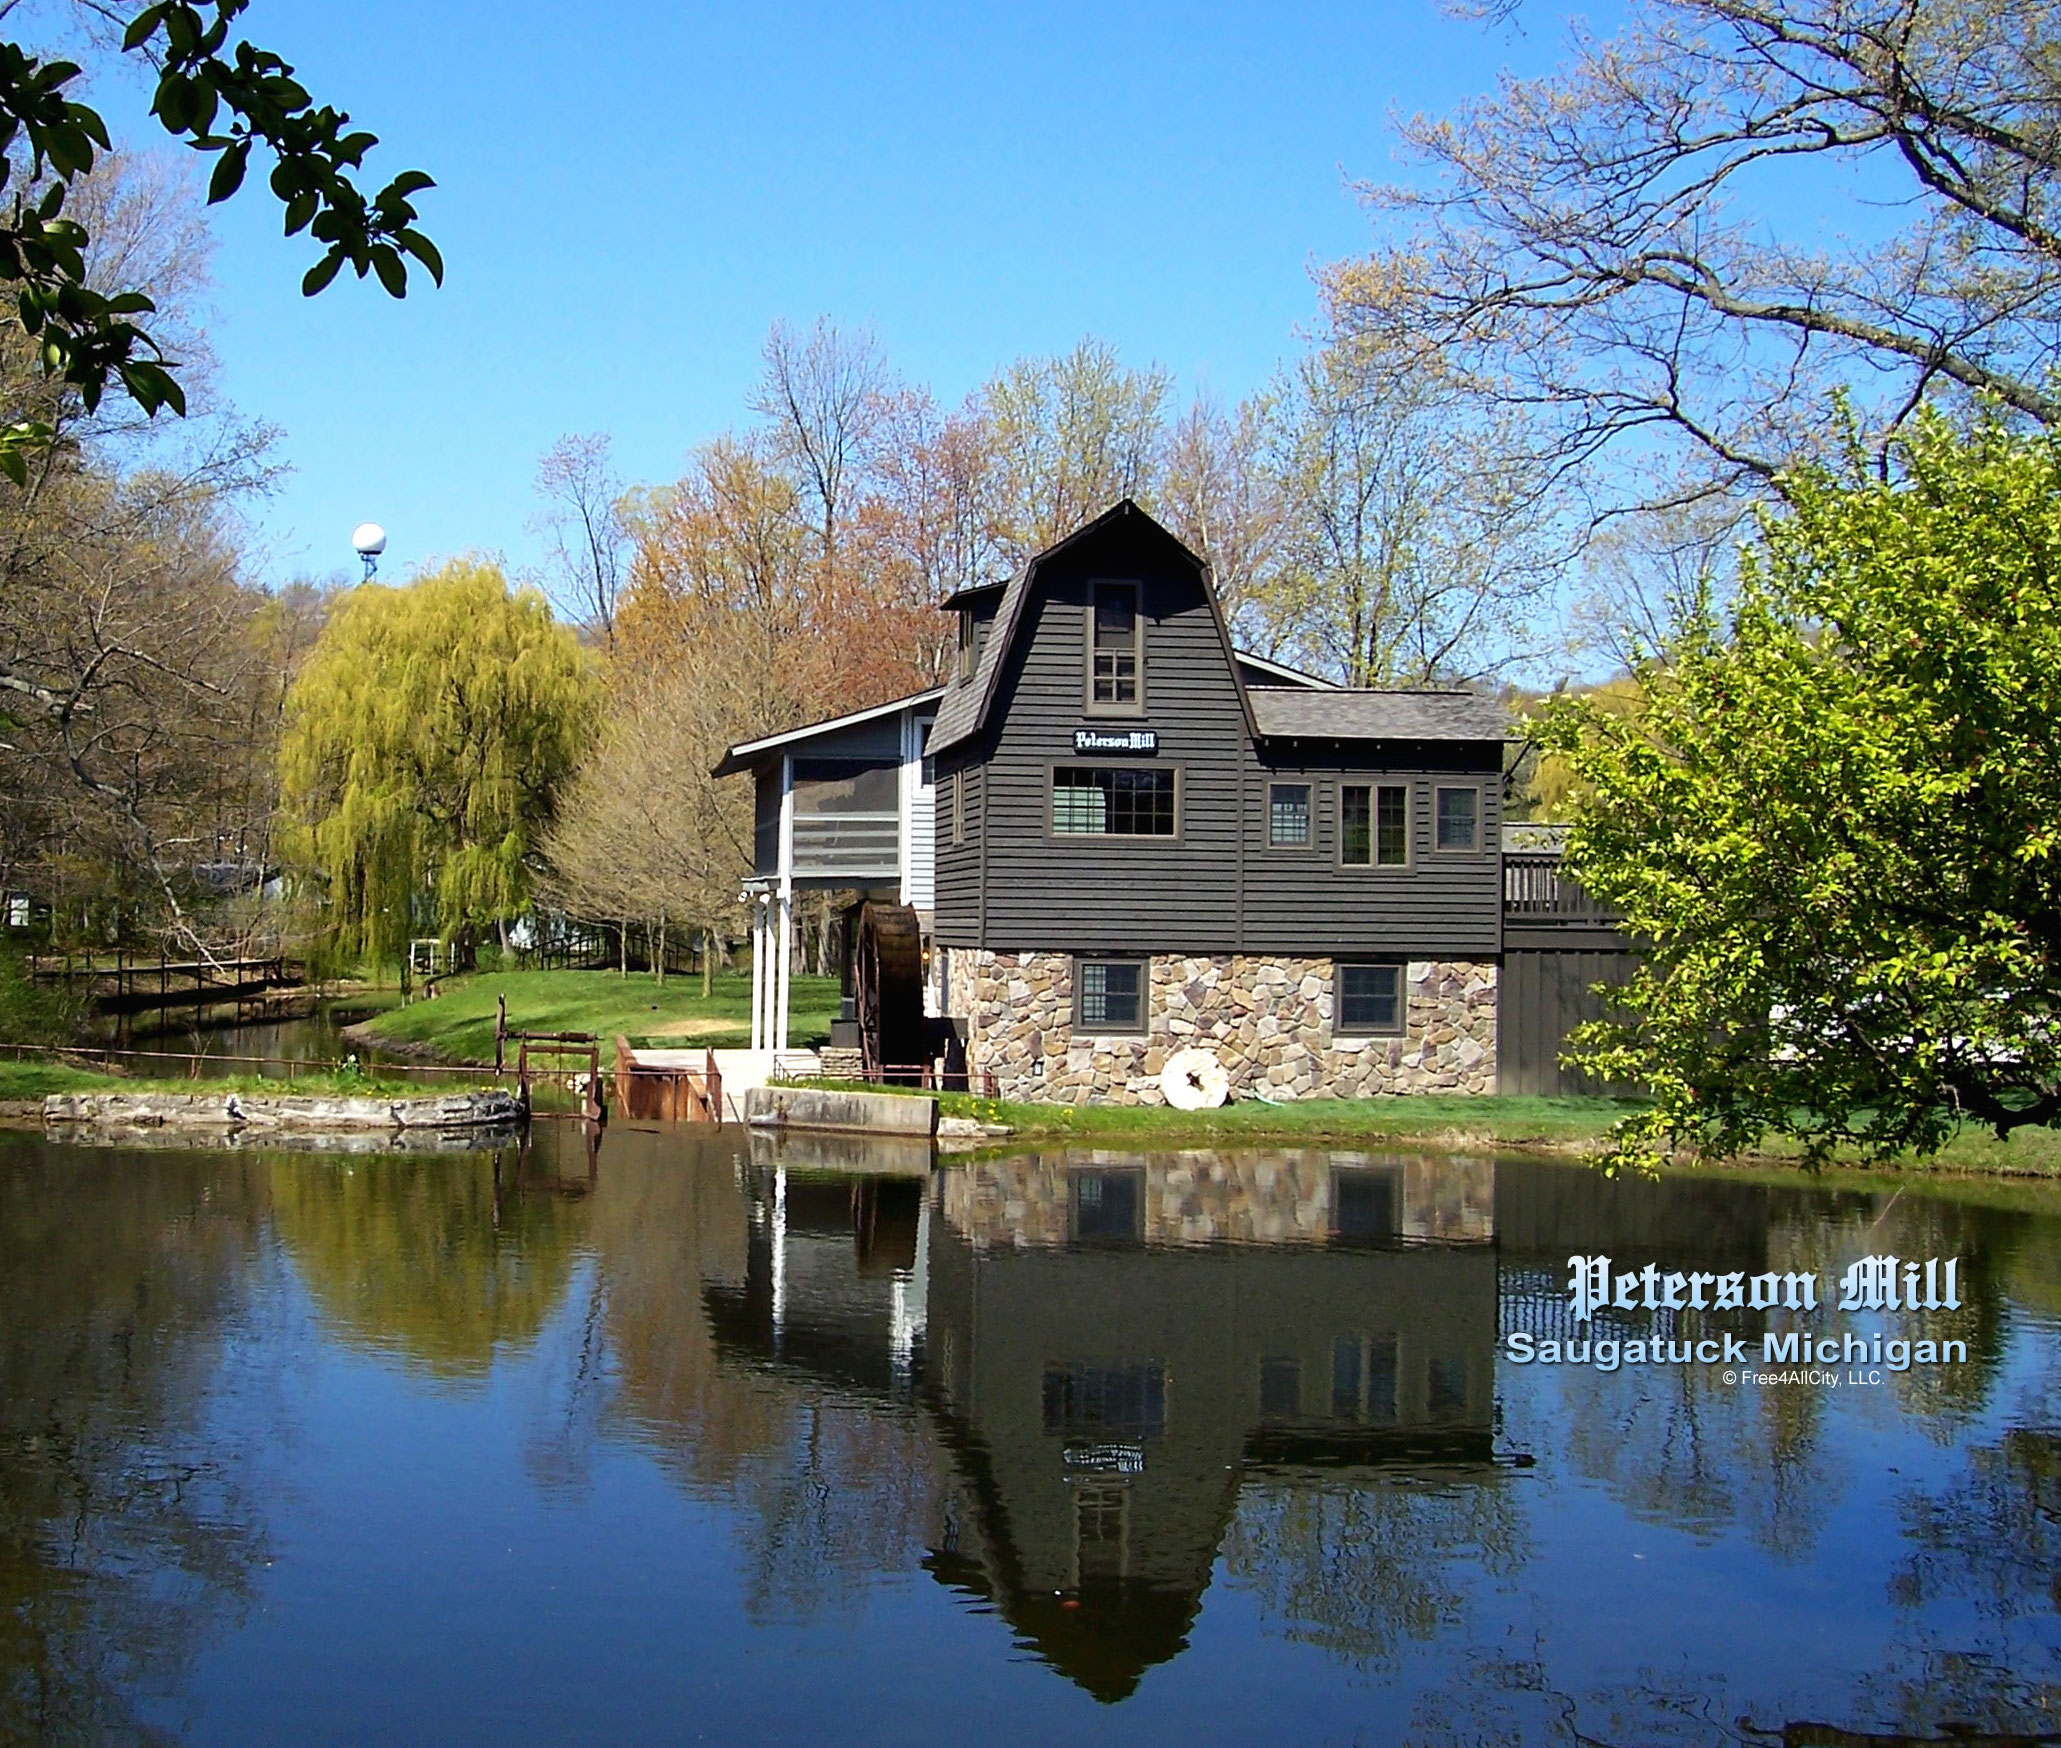 Peterson Mill, Saugatuck